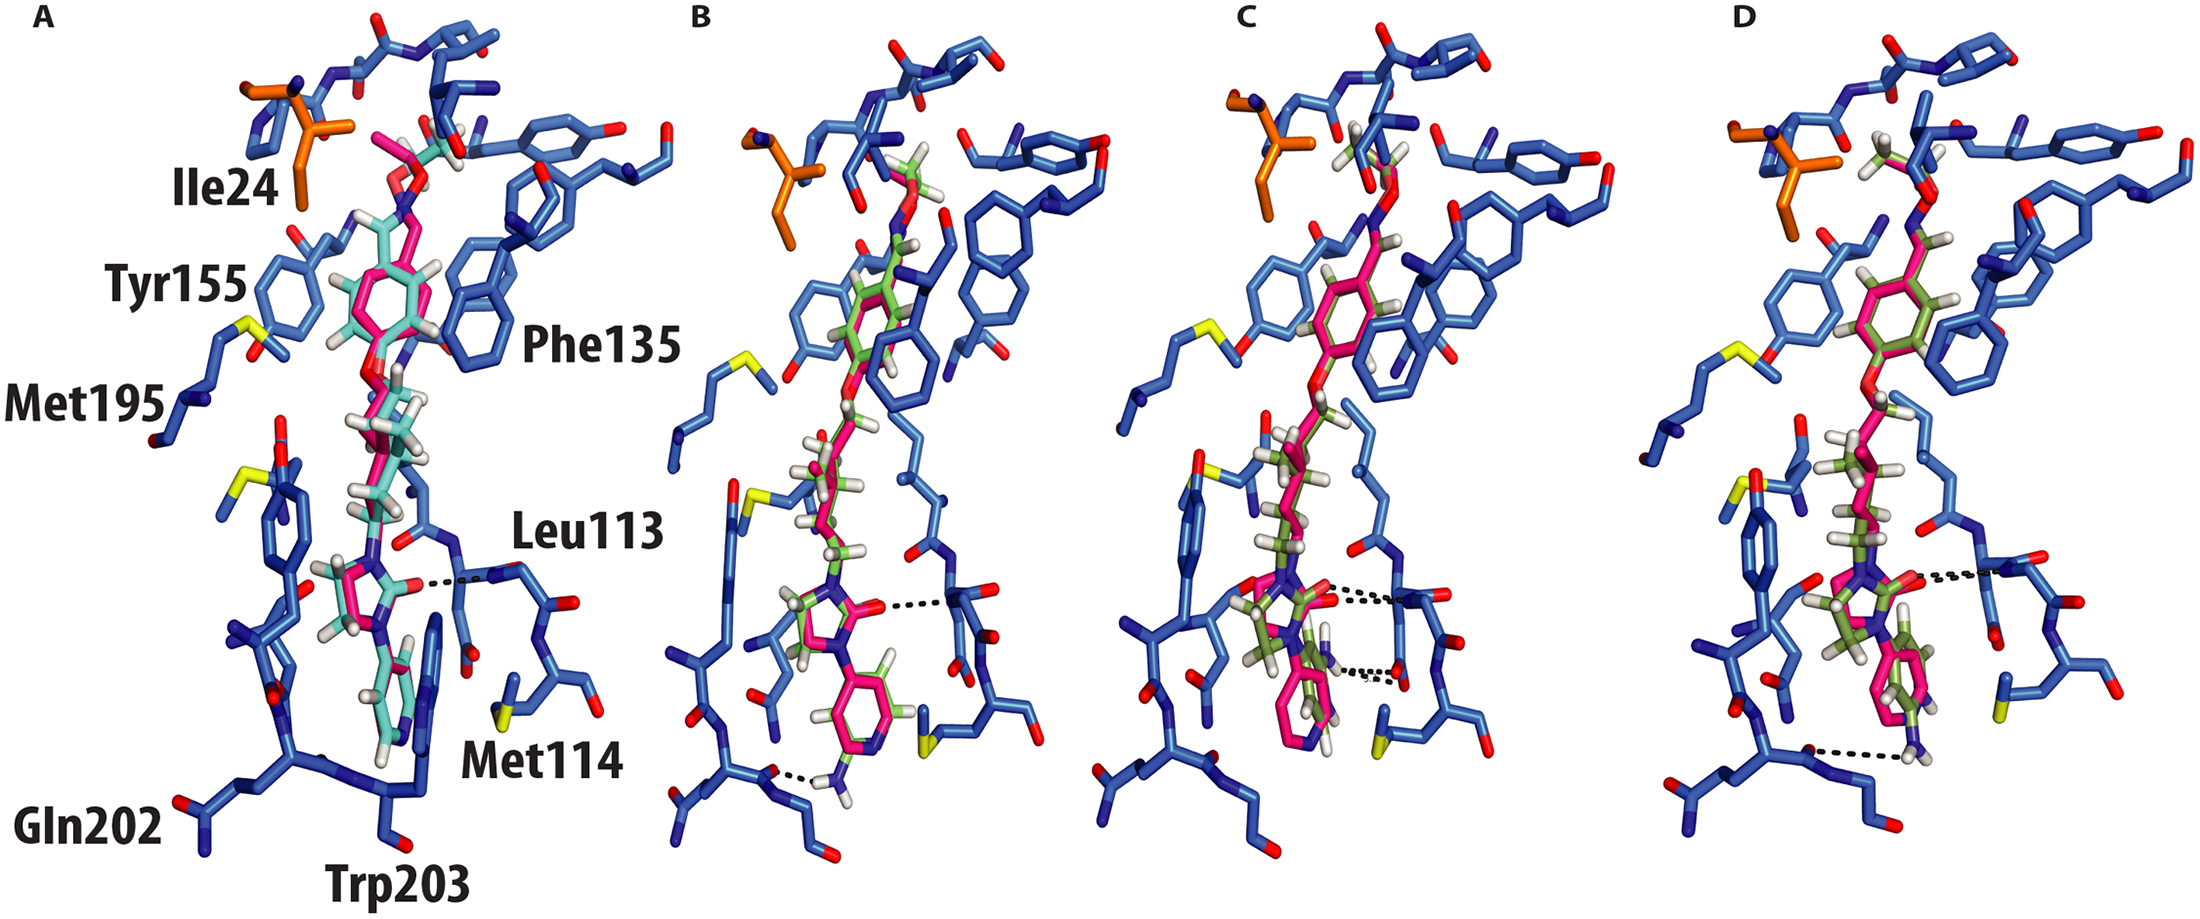 Molecular docking of GPP3 and NLD into the VP1 pocket.